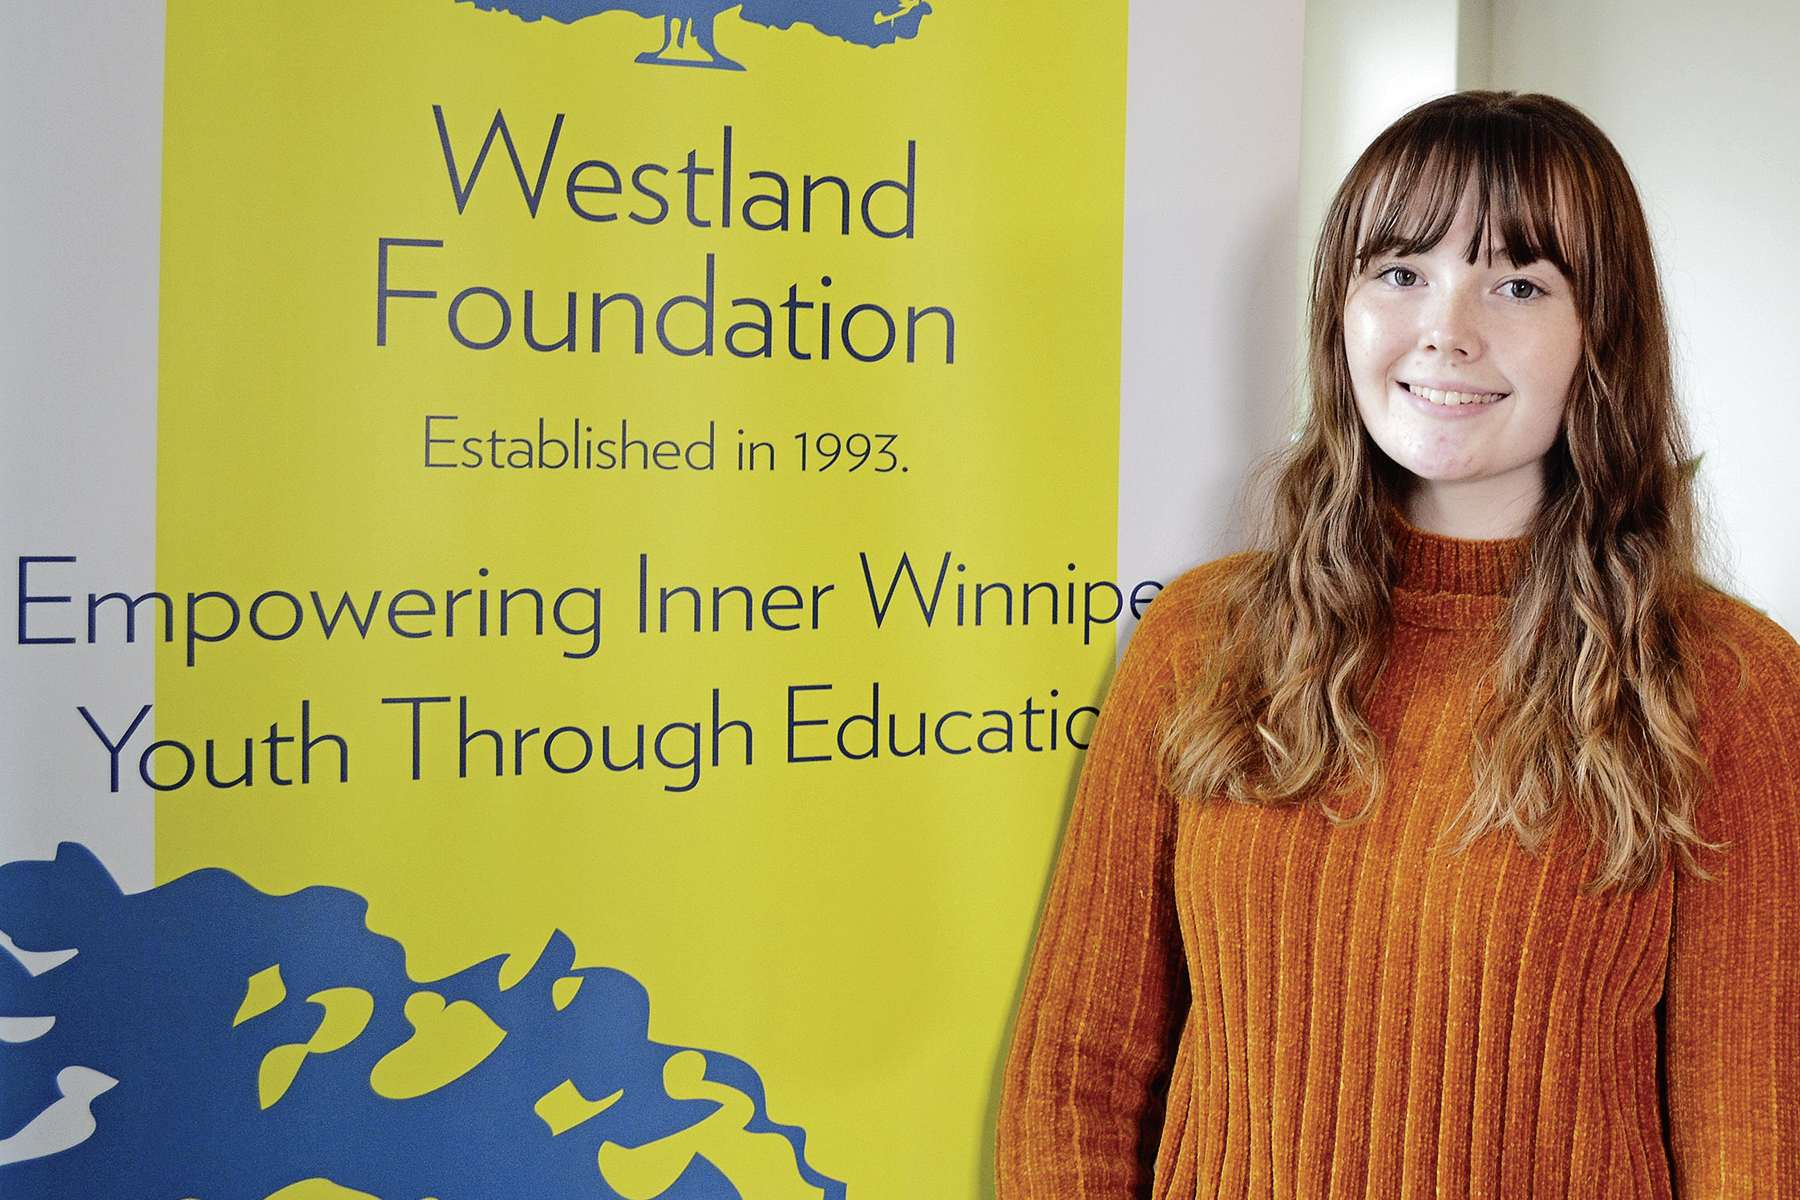 Morgan Neault, 19, earned a scholarship through Westland Foundation that will help support her through an education degree from The University of Winnipeg.